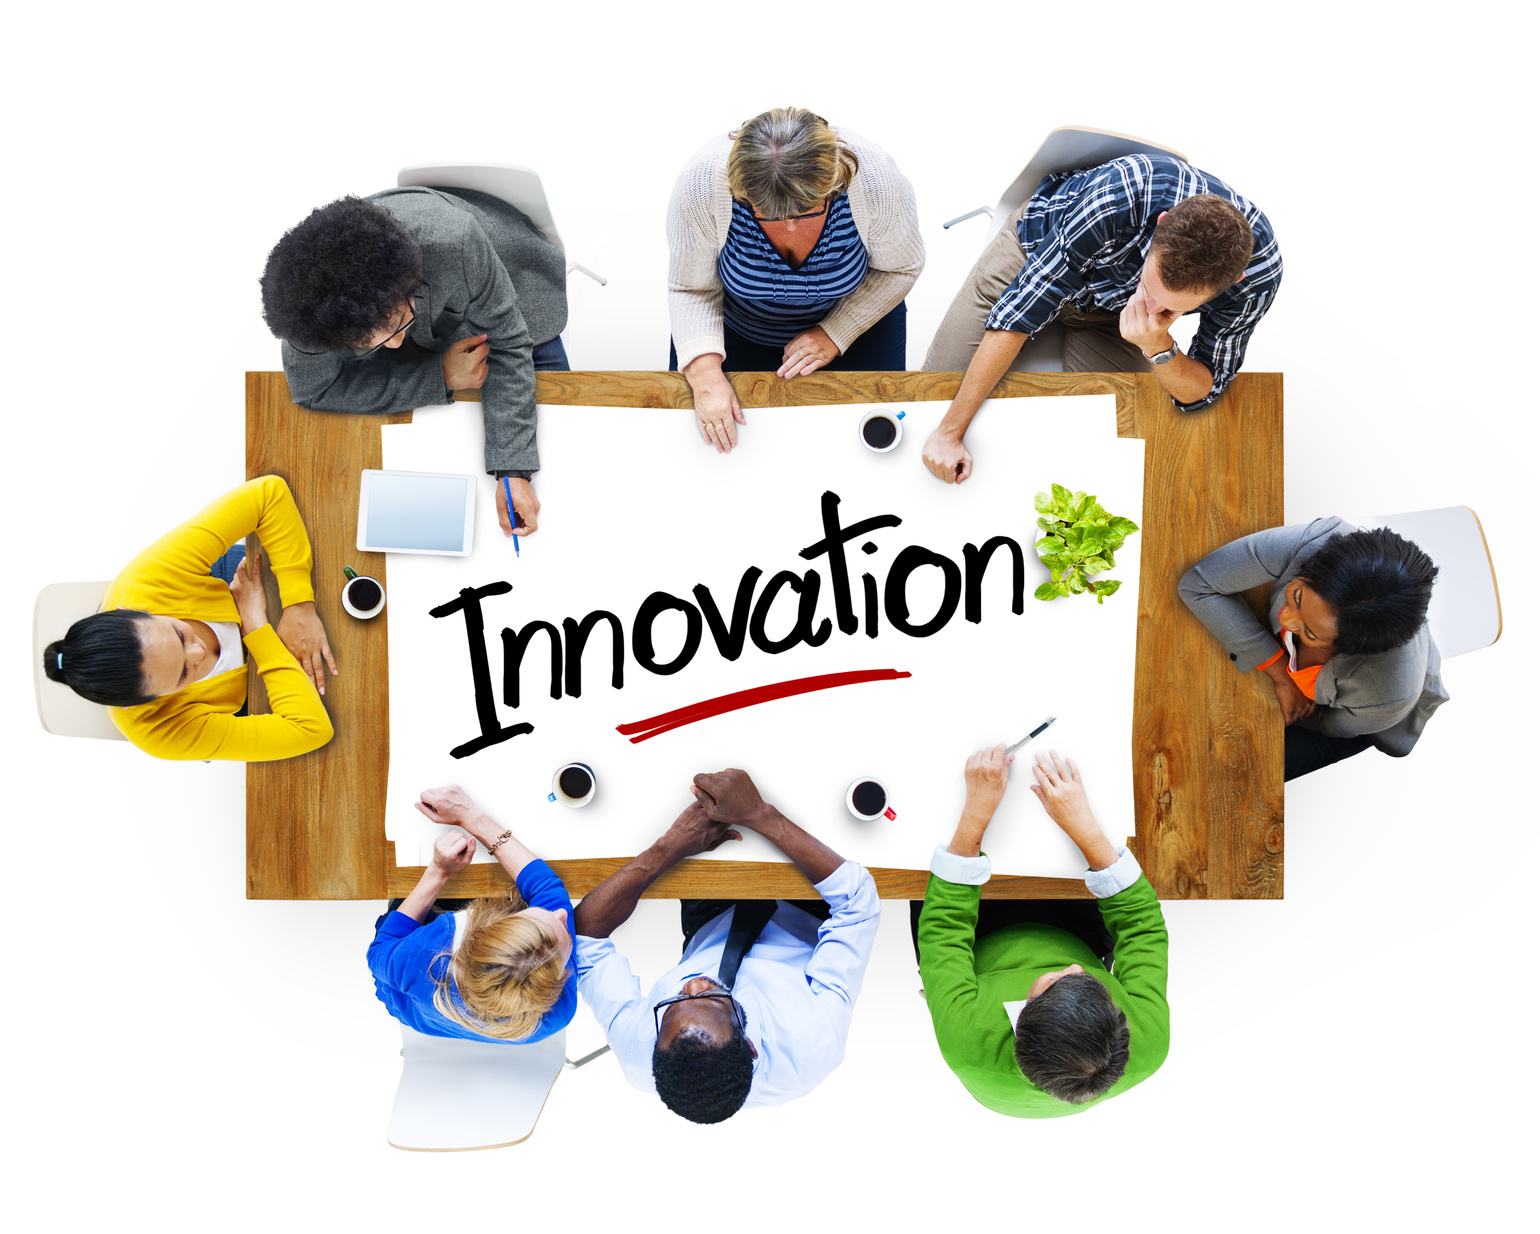 Innovation Teams How To Build Innovation Into Your Business Without Creating Chaos